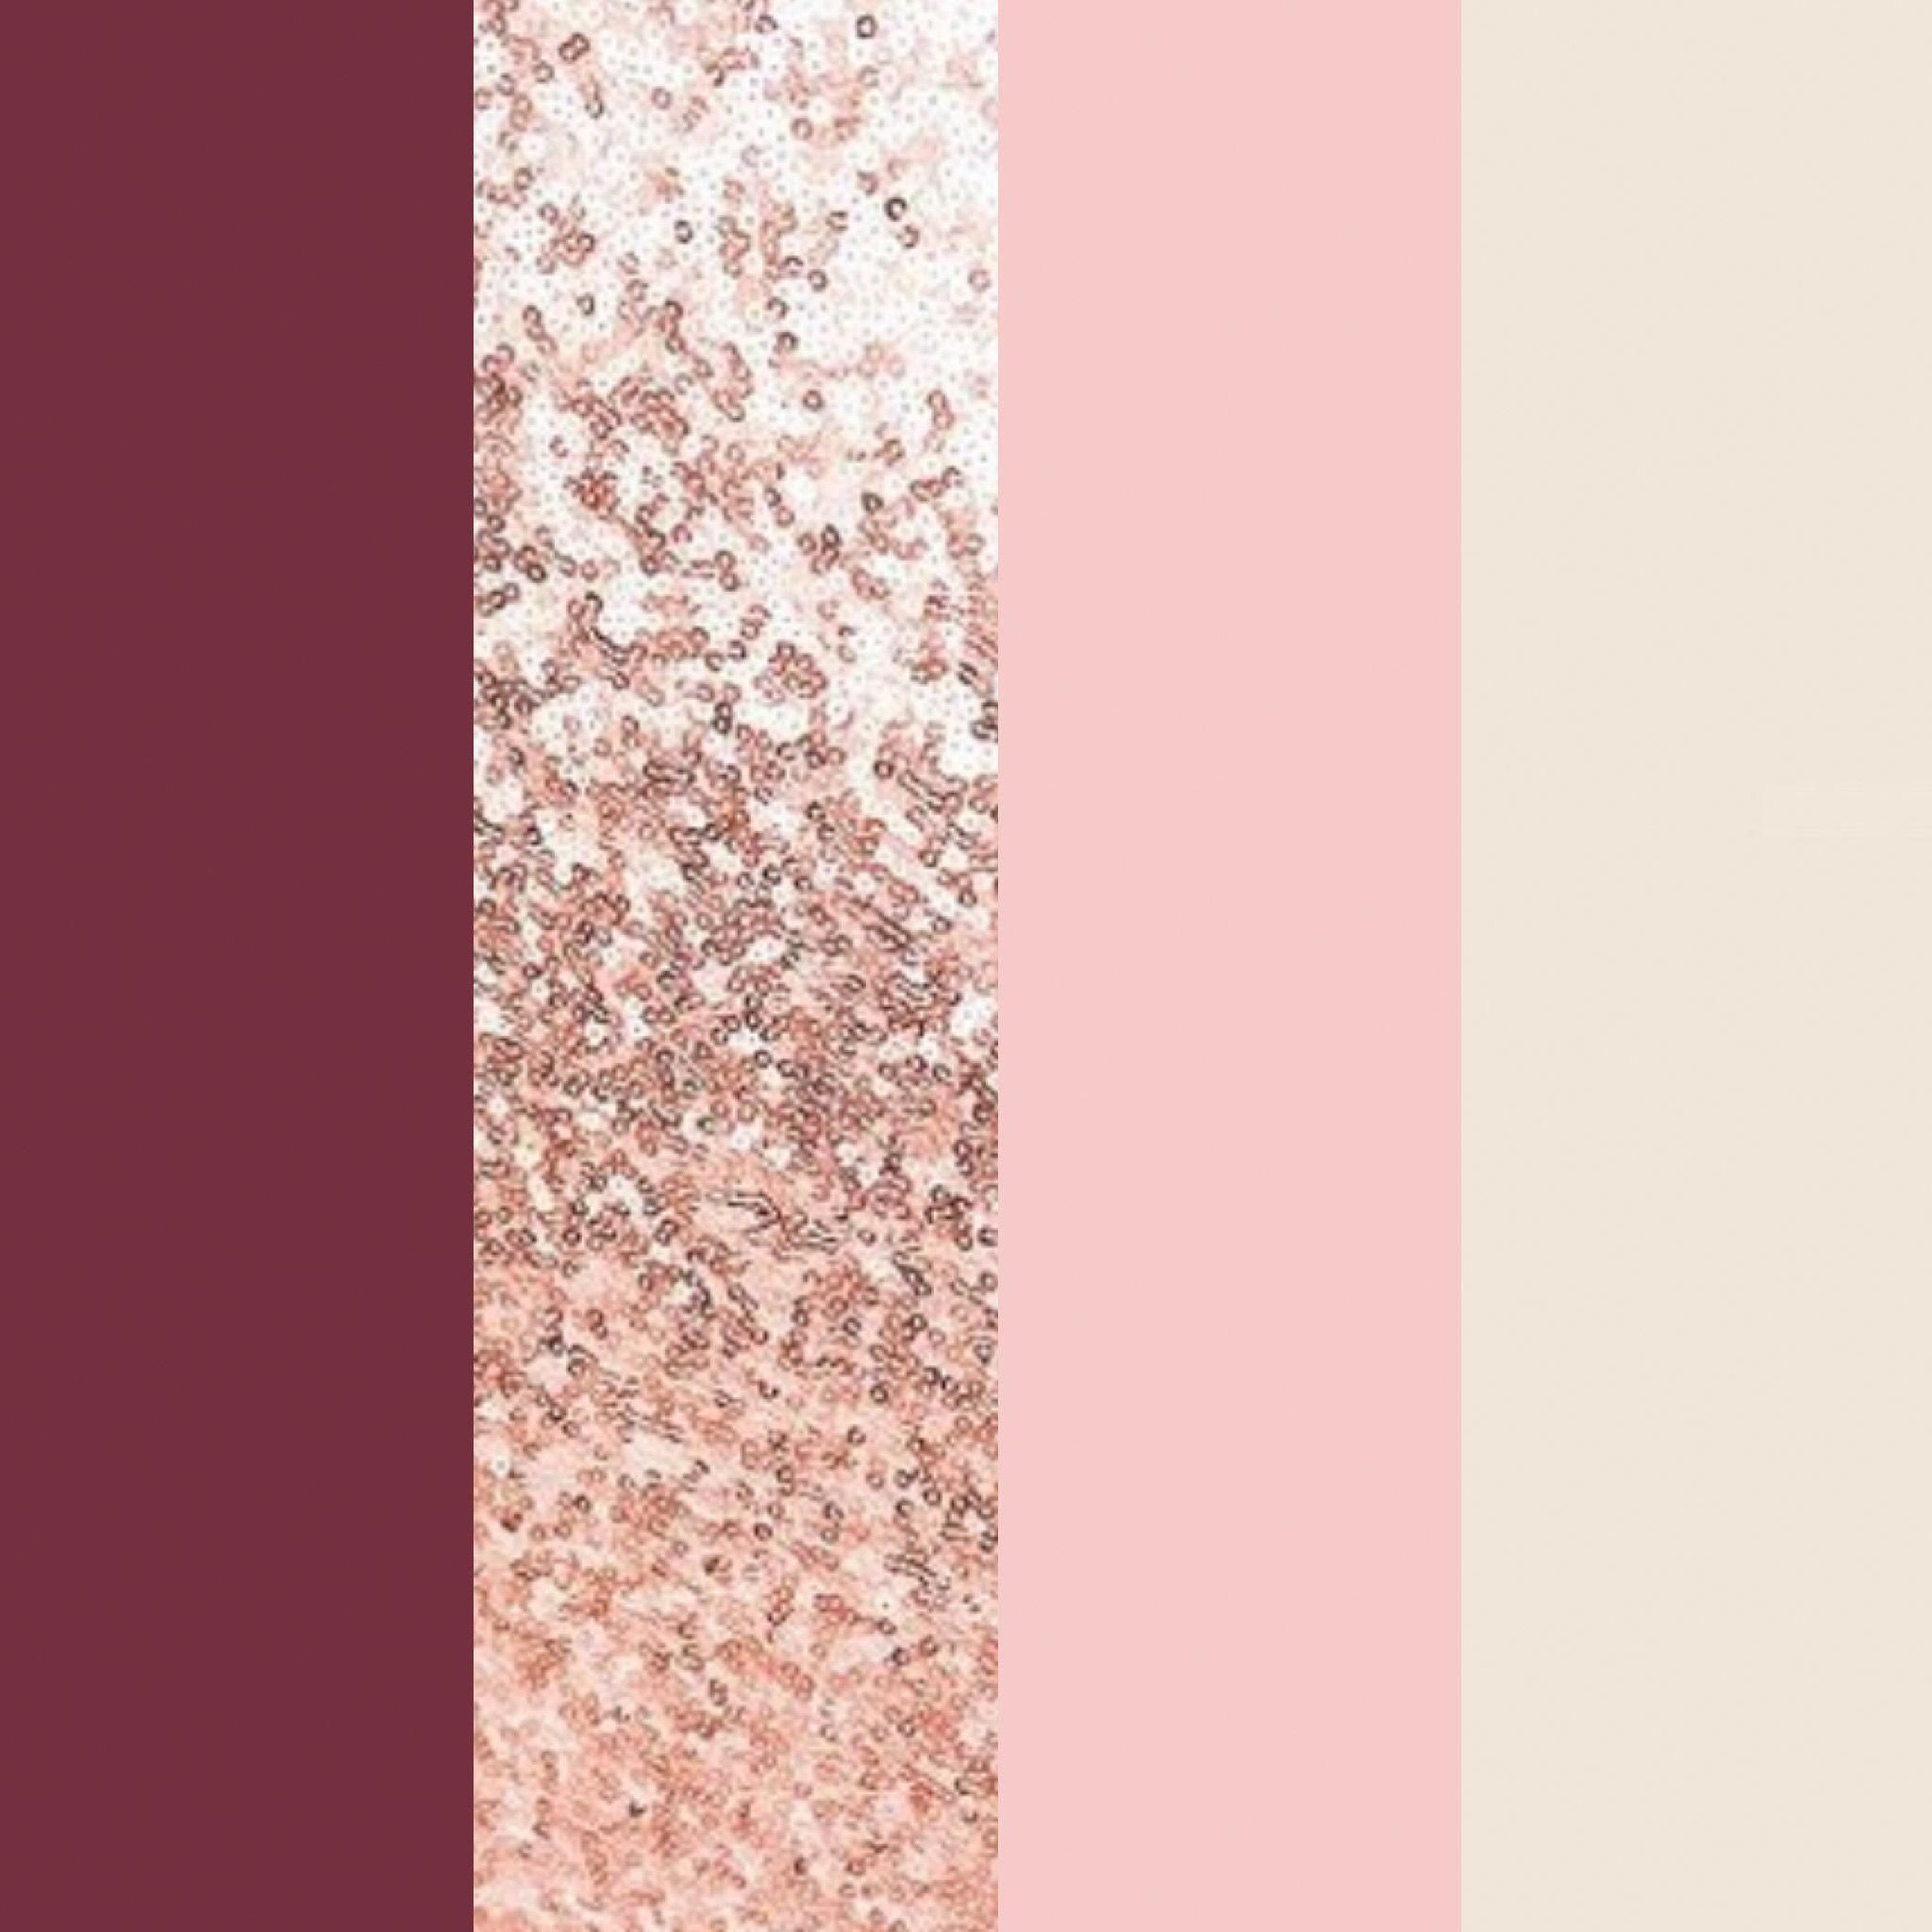 Spring Wedding Colors FallWeddingCenterpiecesElegant is part of Summer wedding colors -